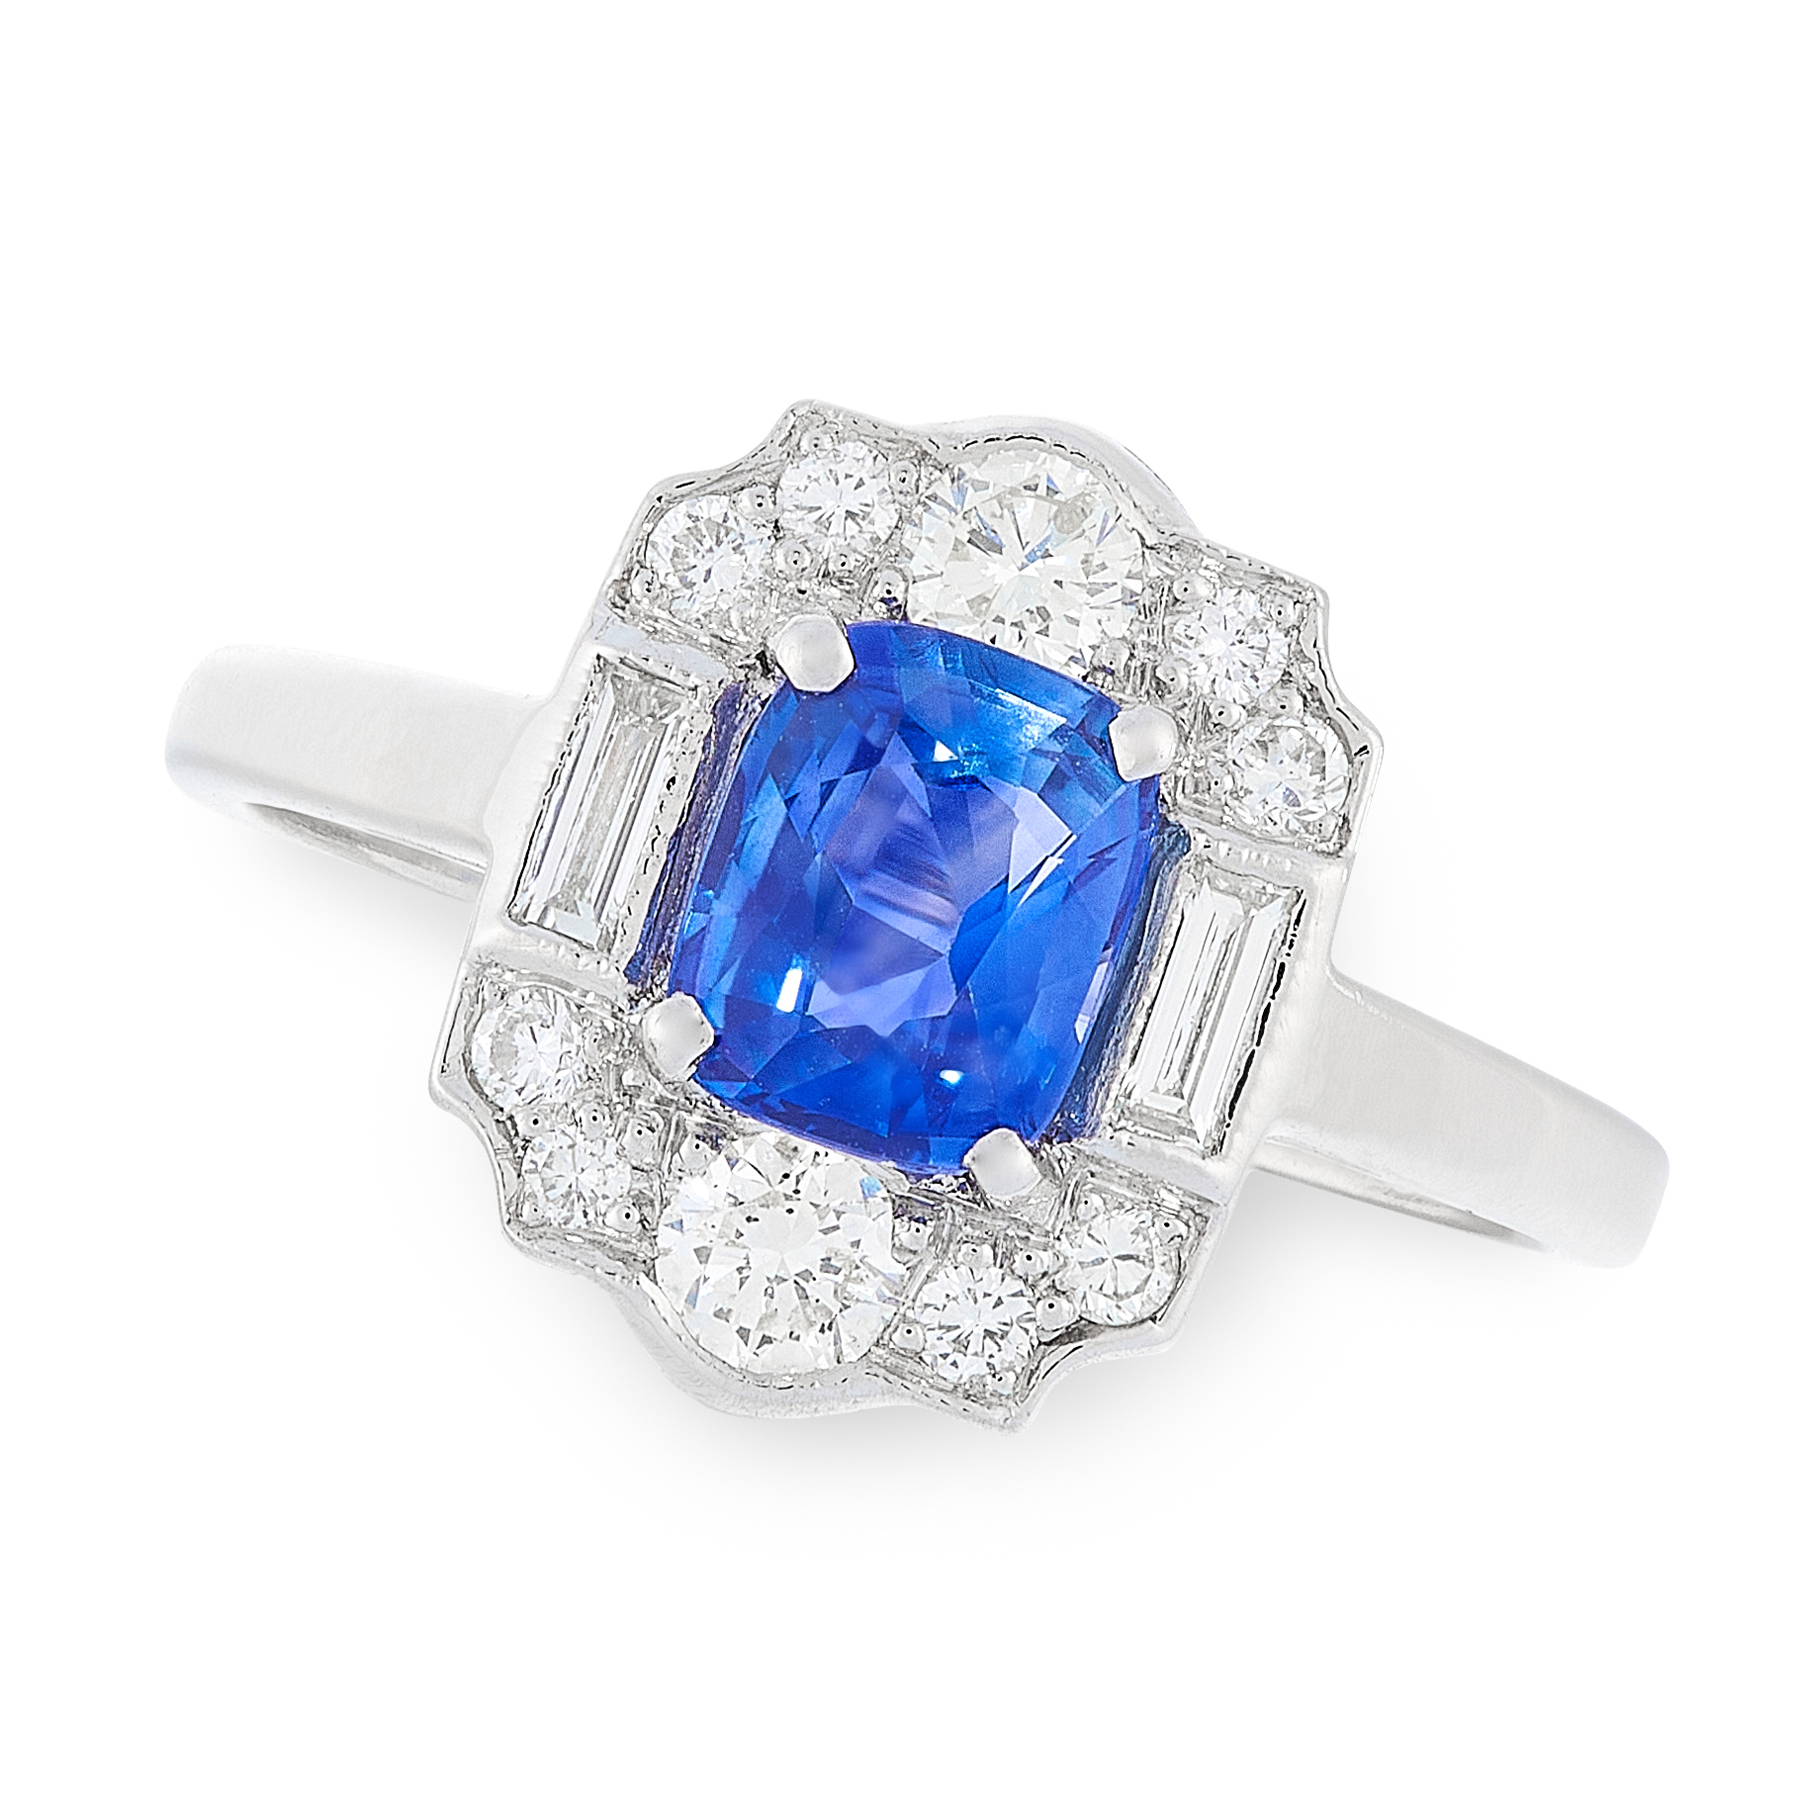 A SAPPHIRE AND DIAMOND DRESS RING in platinum, set with a cushion cut sapphire of 1.03 carats,